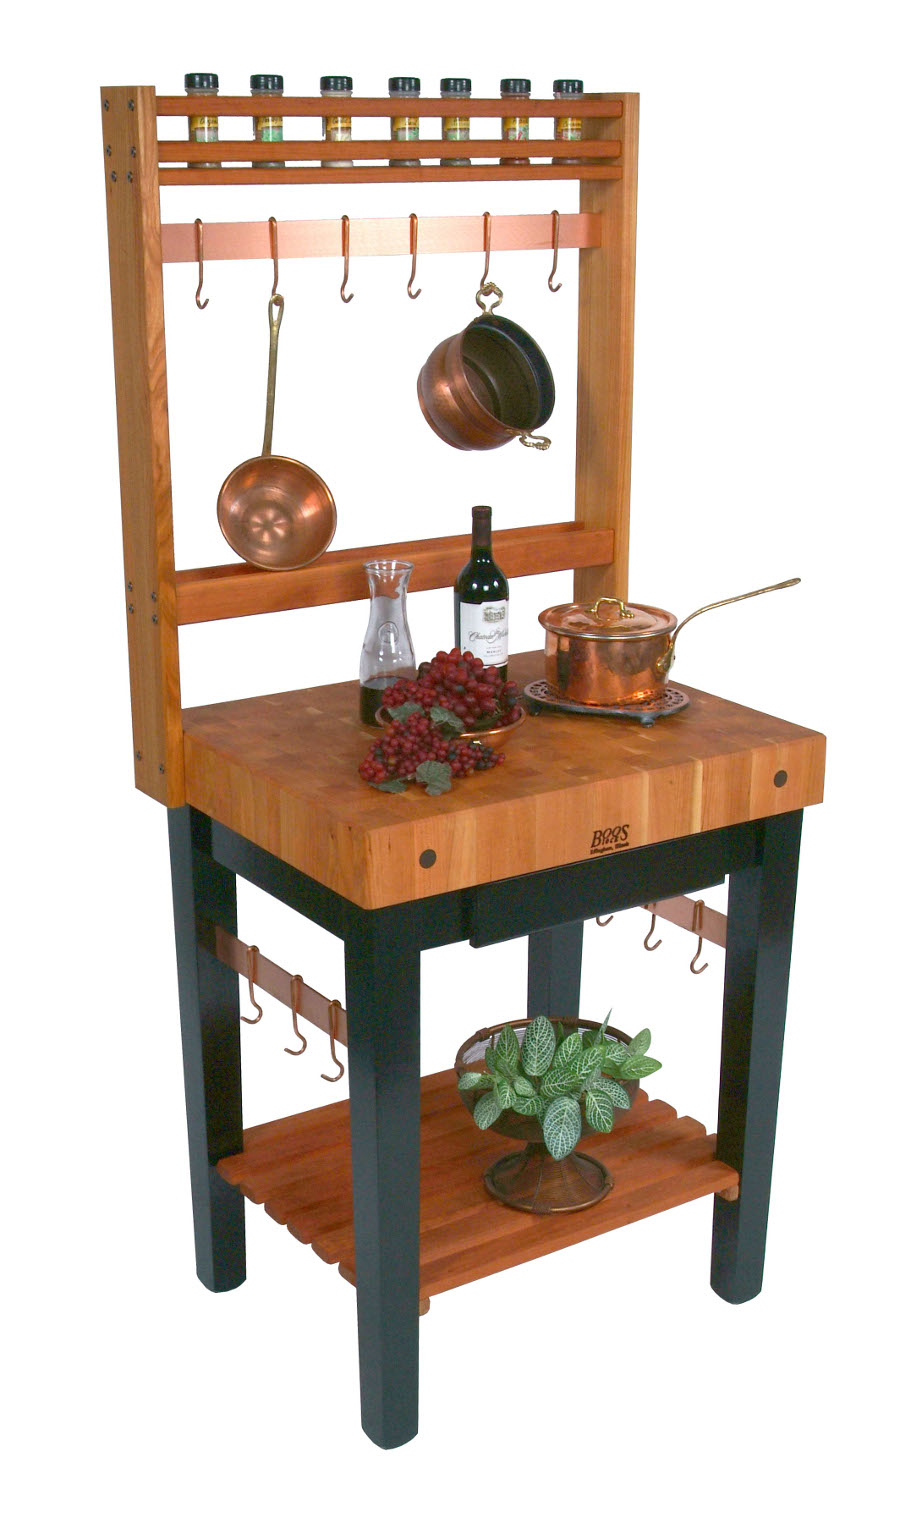 kitchen portable island painted tables movable islands rolling on wheels mobile boos cherry pro prep bloc 4 thick butcher block optional pot rack